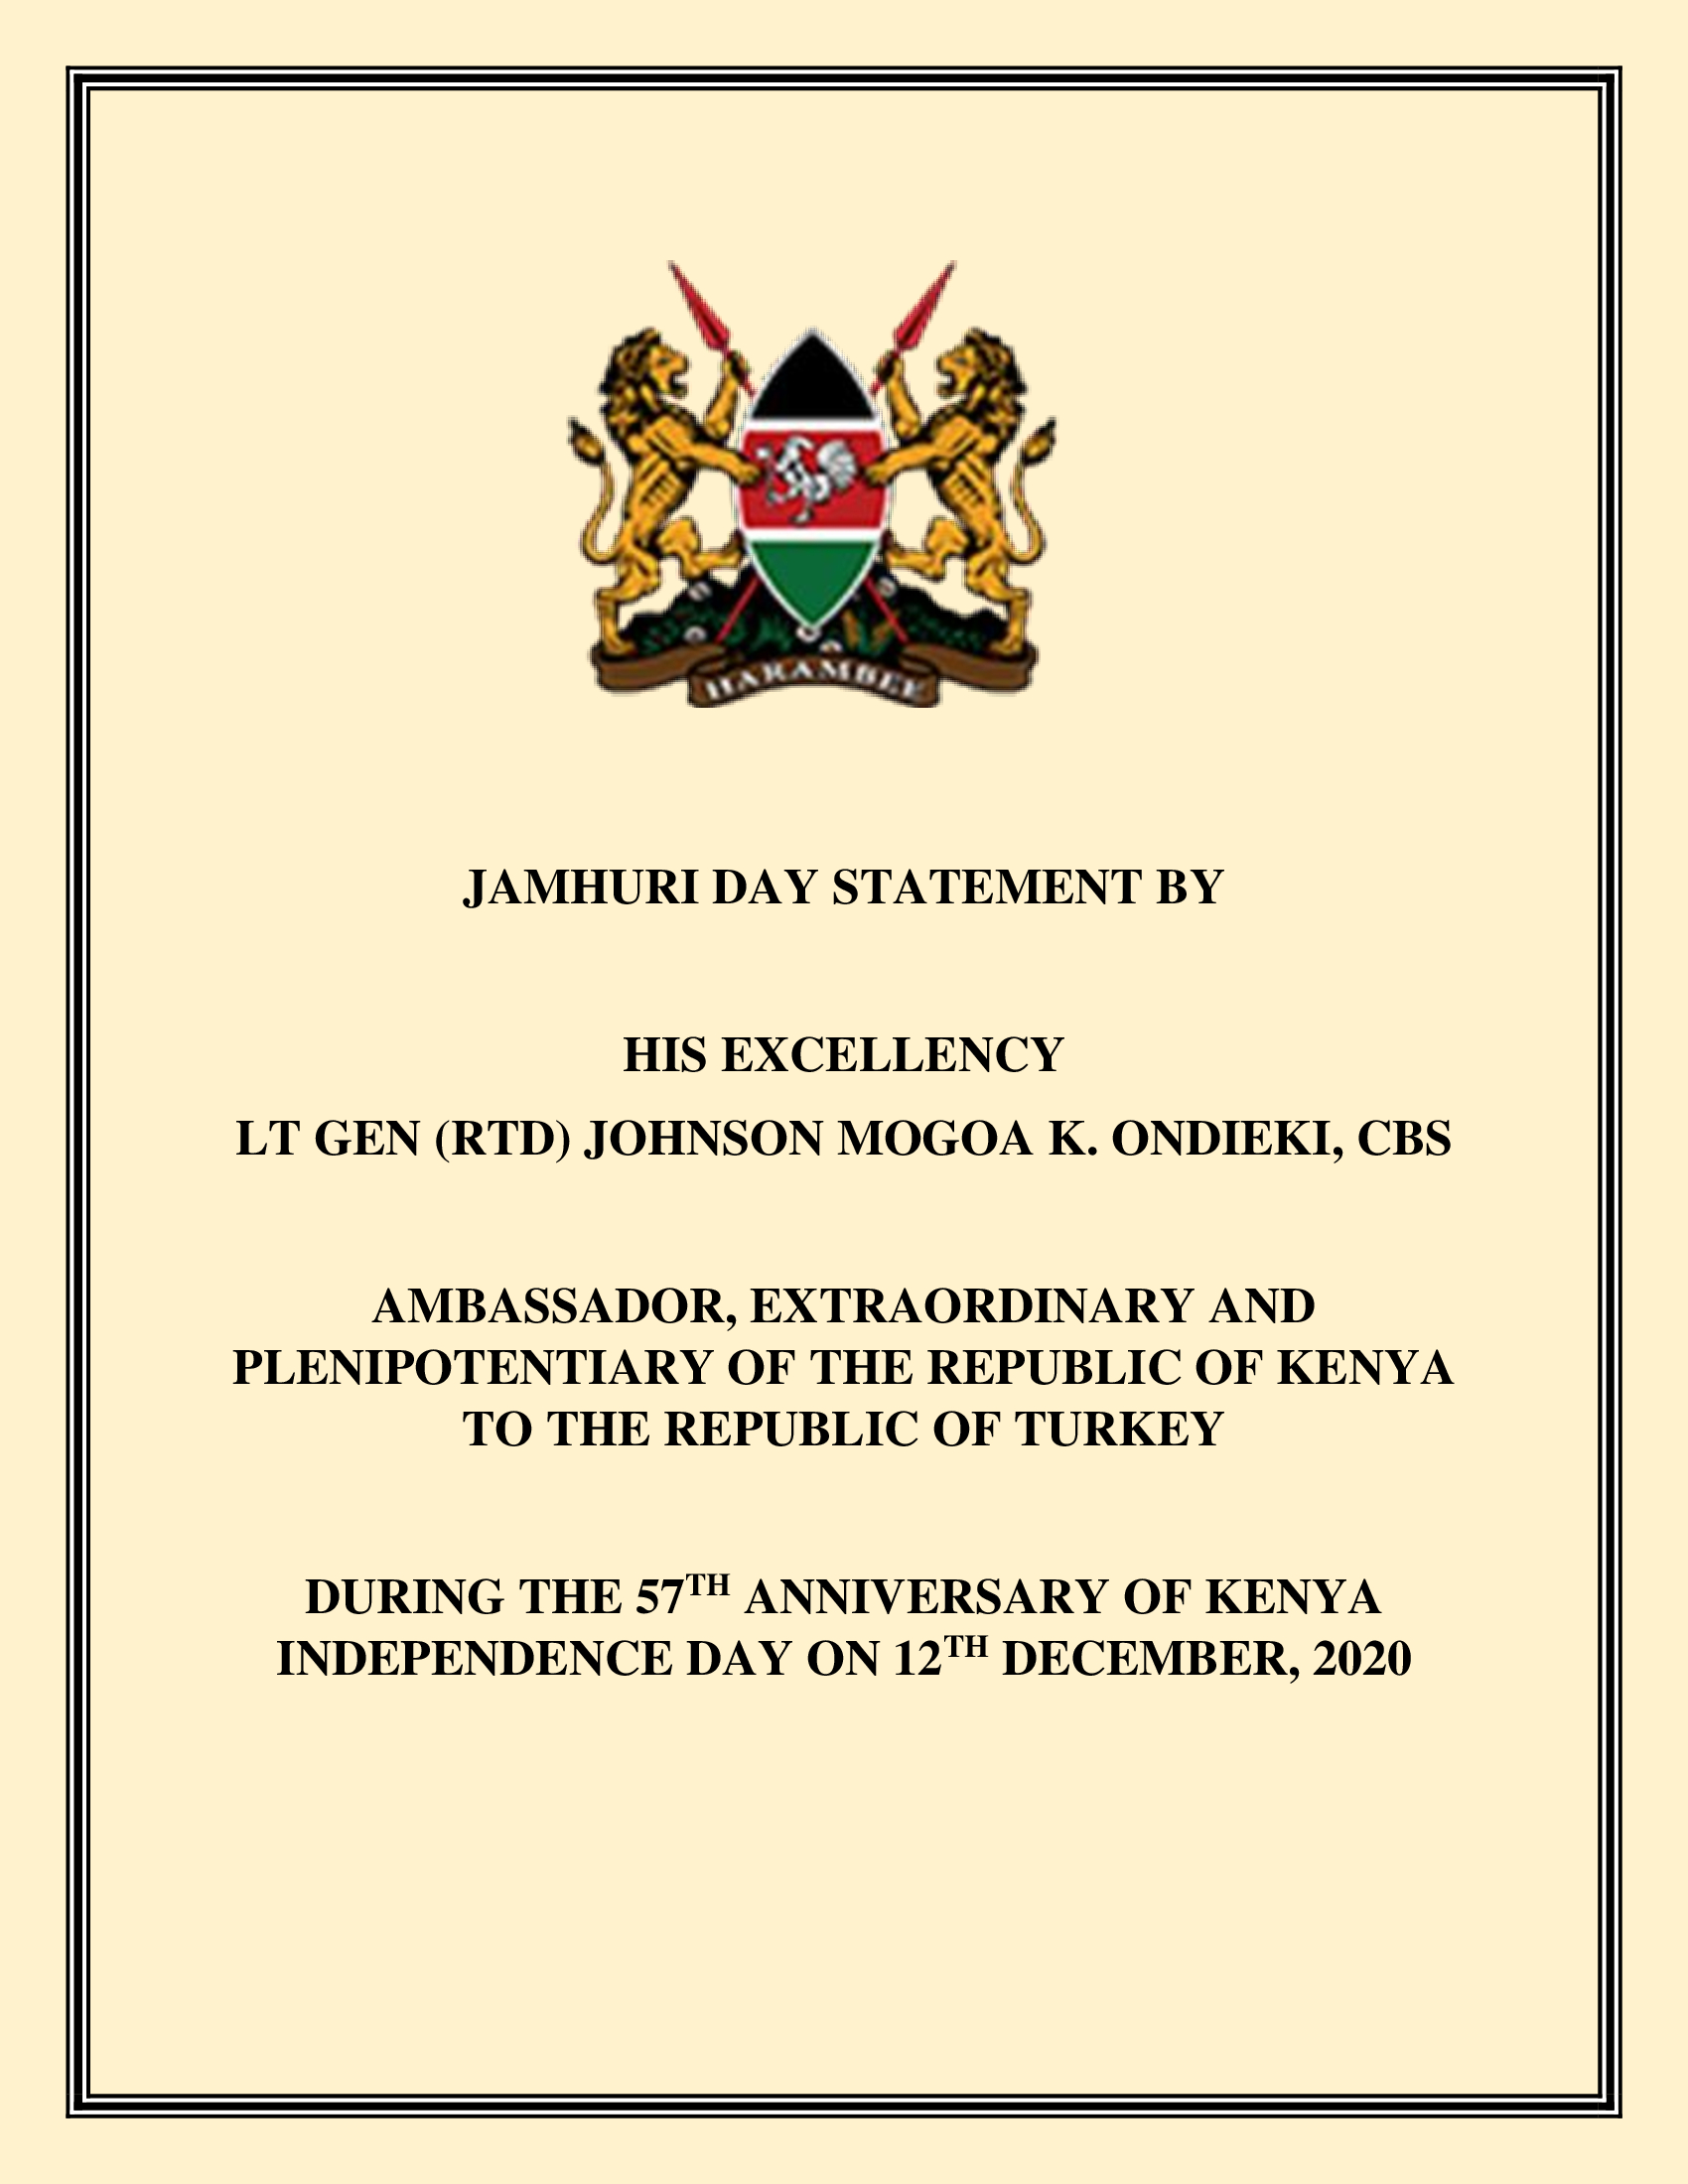 Jamhuri Day Statement by H.E. the Ambassador of the Republic of Kenya